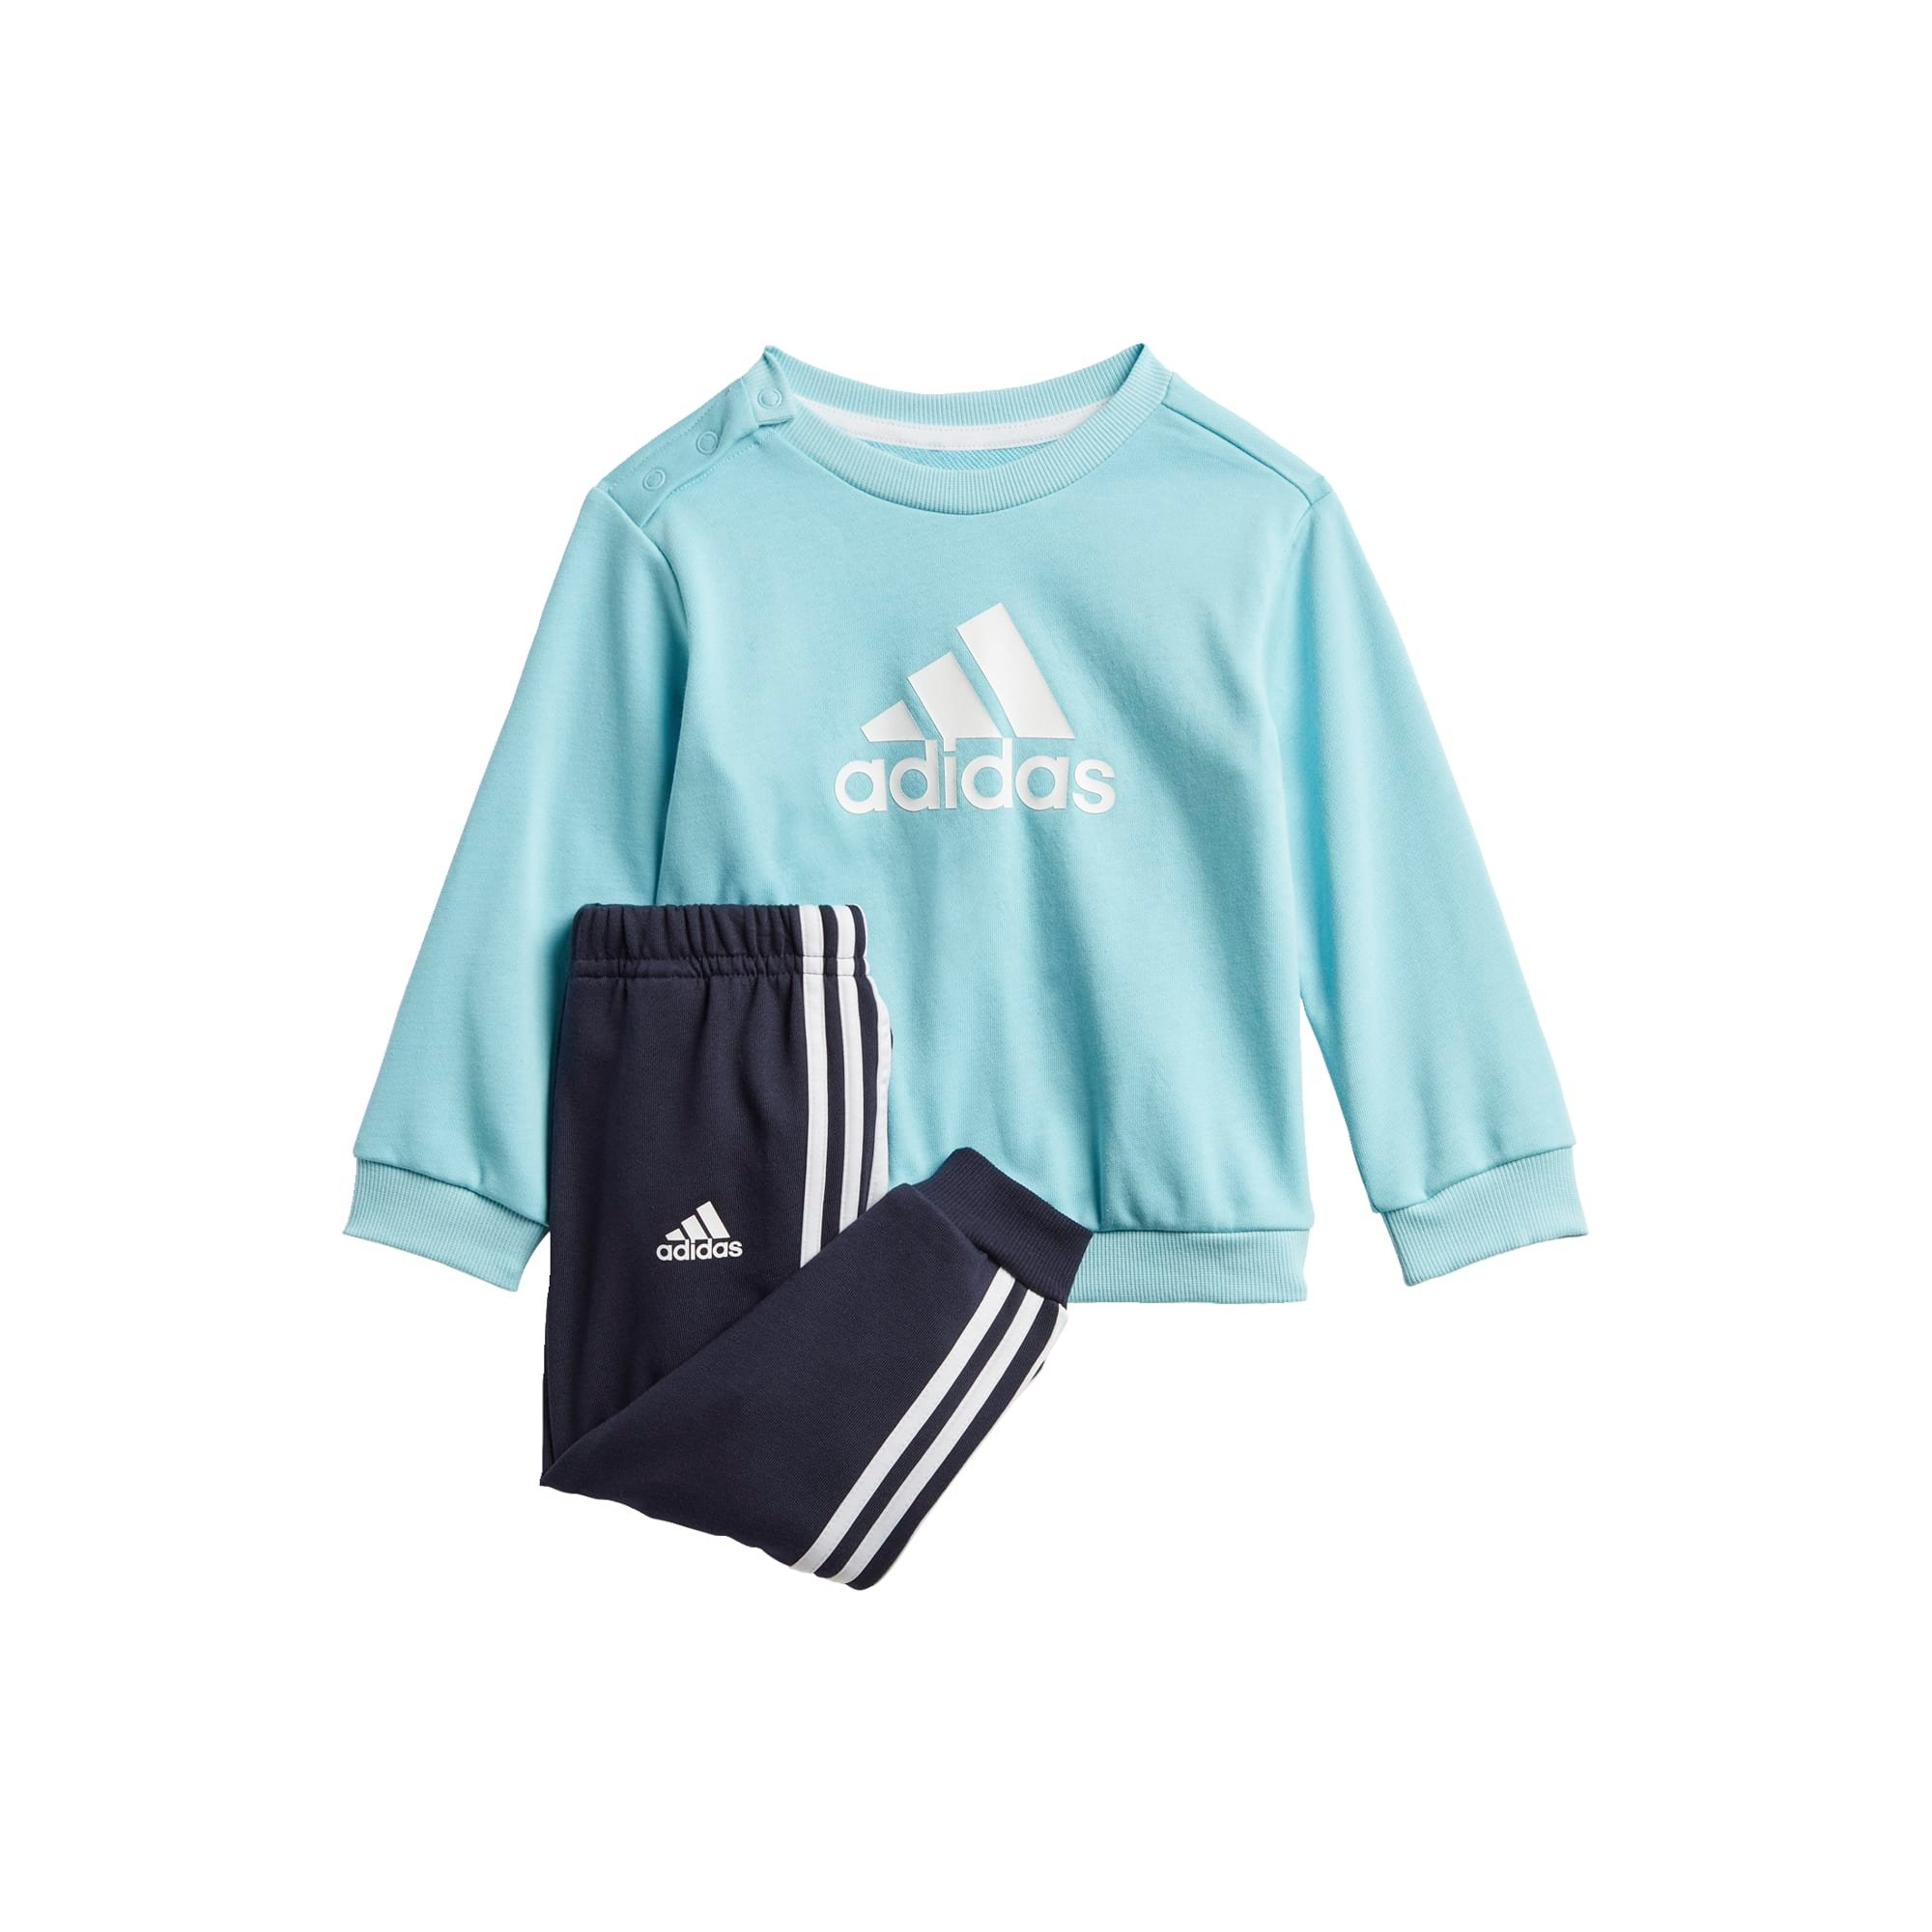 adidas Performance joggingpak »BADGE OF SPORT FRENCH TERRY« nu online bestellen